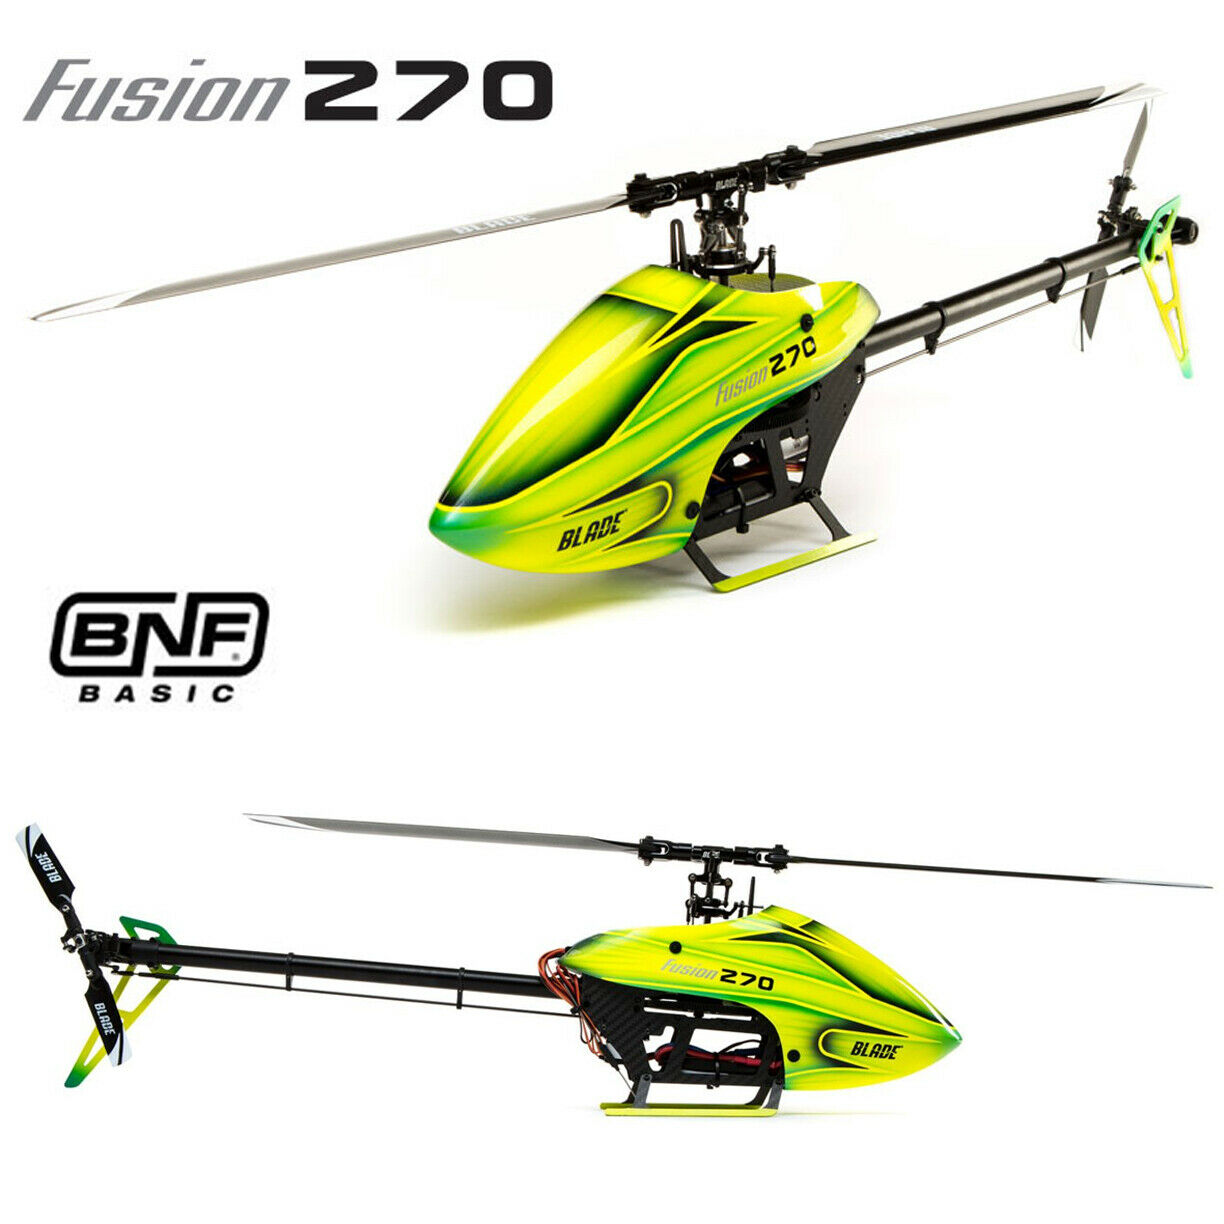 Blade BLH5350 Fusion 270 BNF Basic Helicopter BIND AND FLY HELI